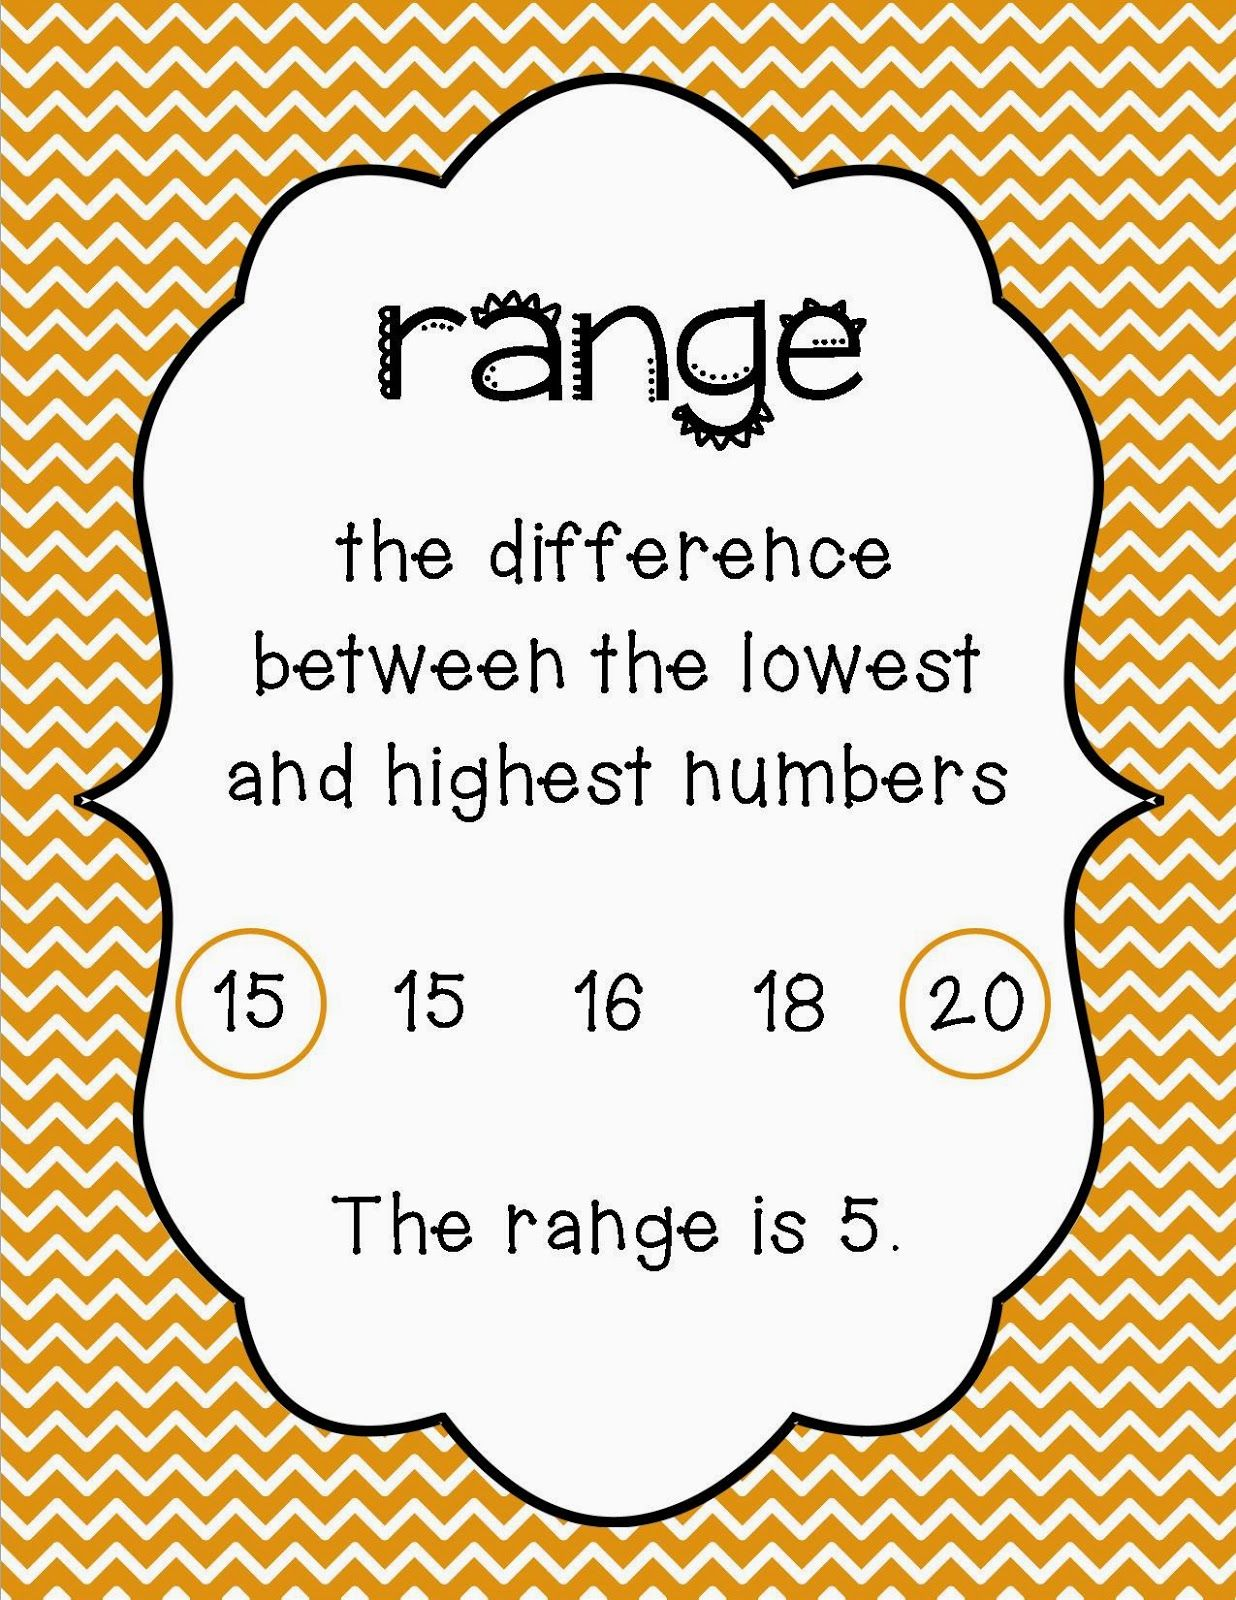 Mean Mode Median And Range Posters